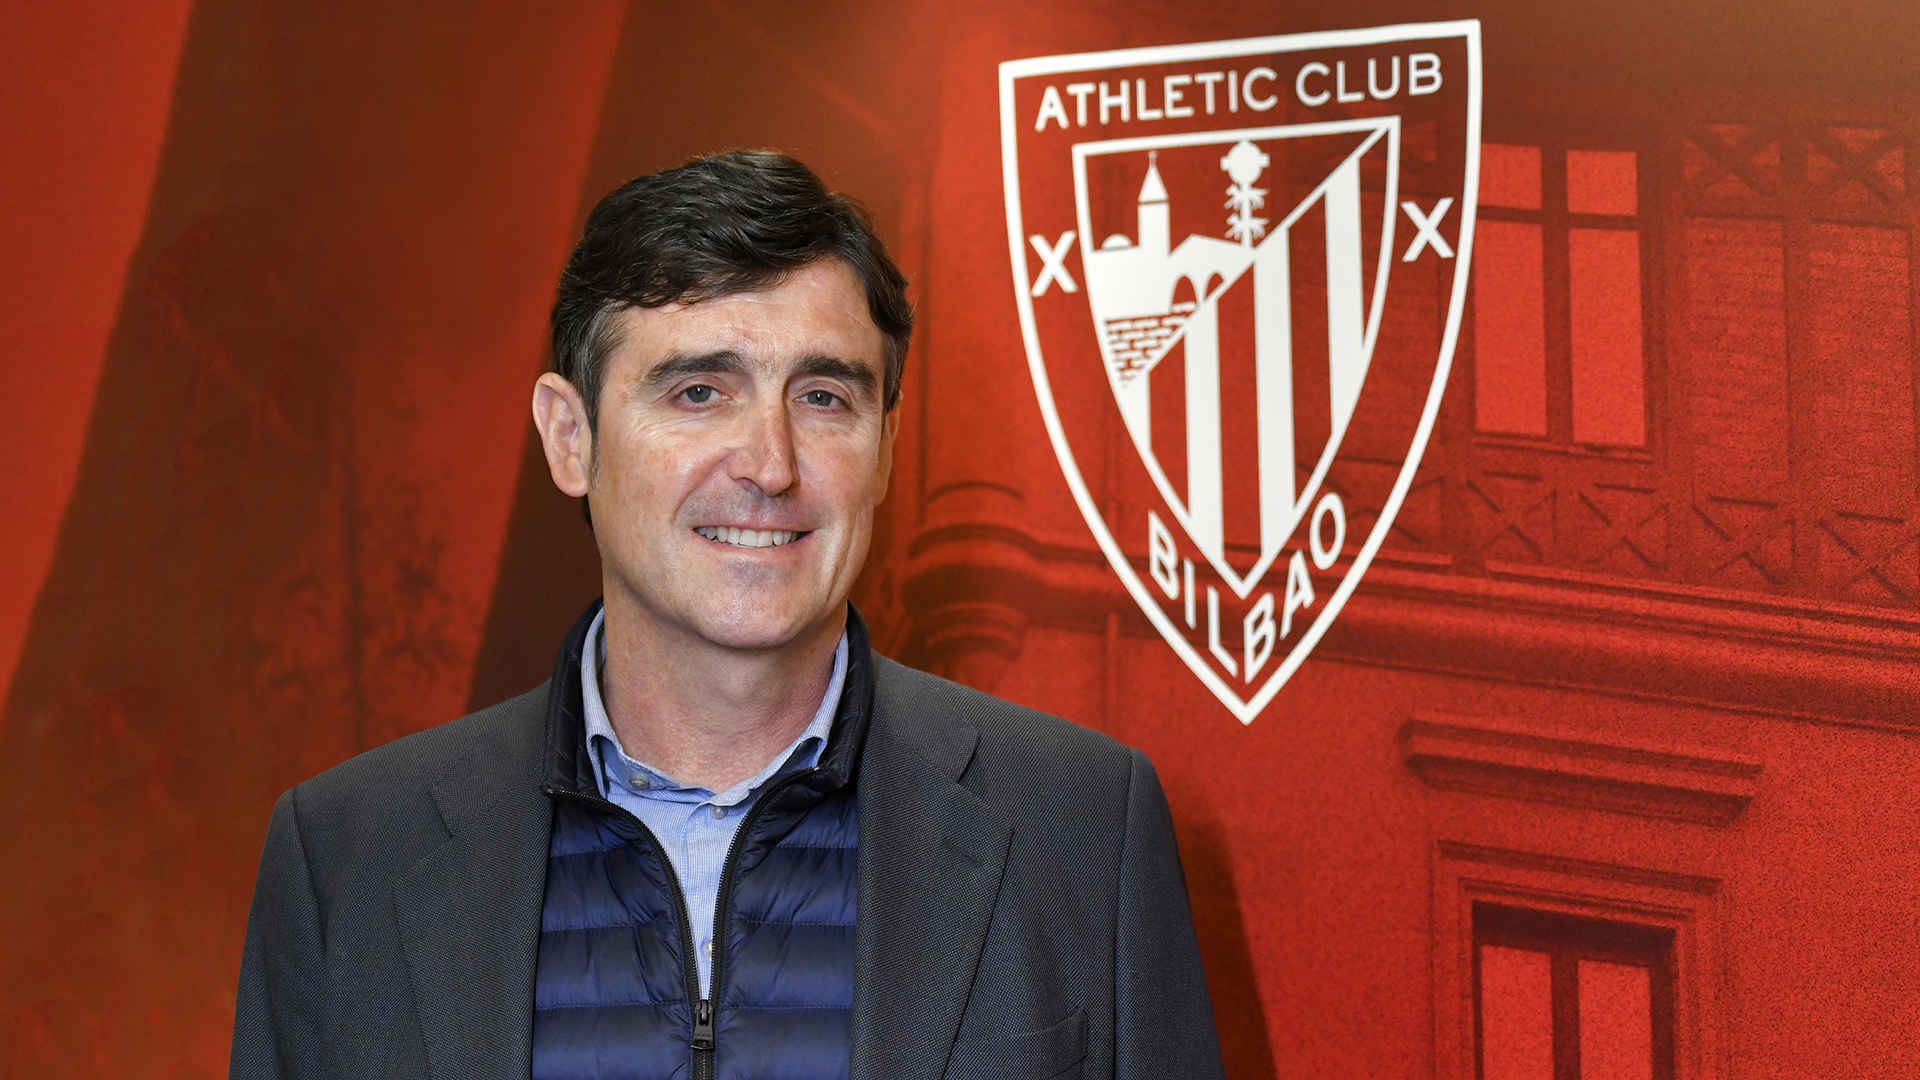 Martín Urrejola will be in charge of the relations with the partner clubs of Athletic Club